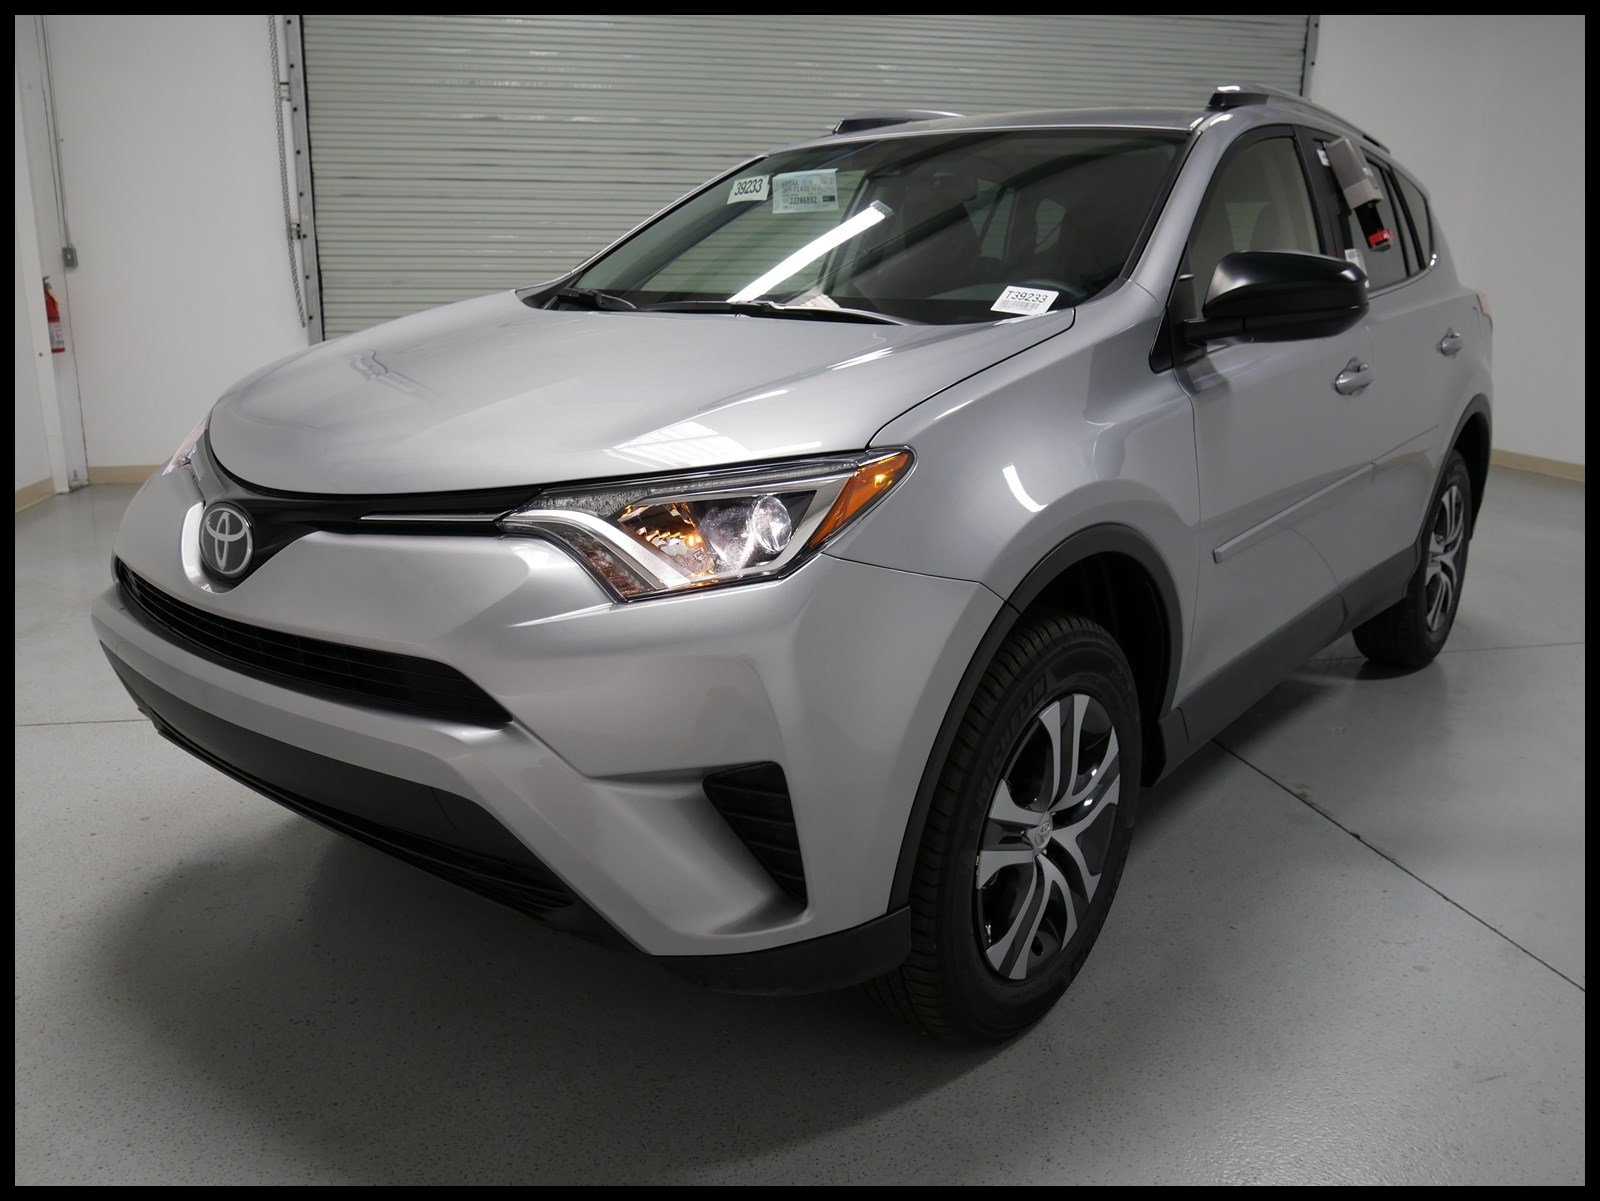 Top New 2018 toyota Rav4 Le Sport Utility In Prescott T Reviews and